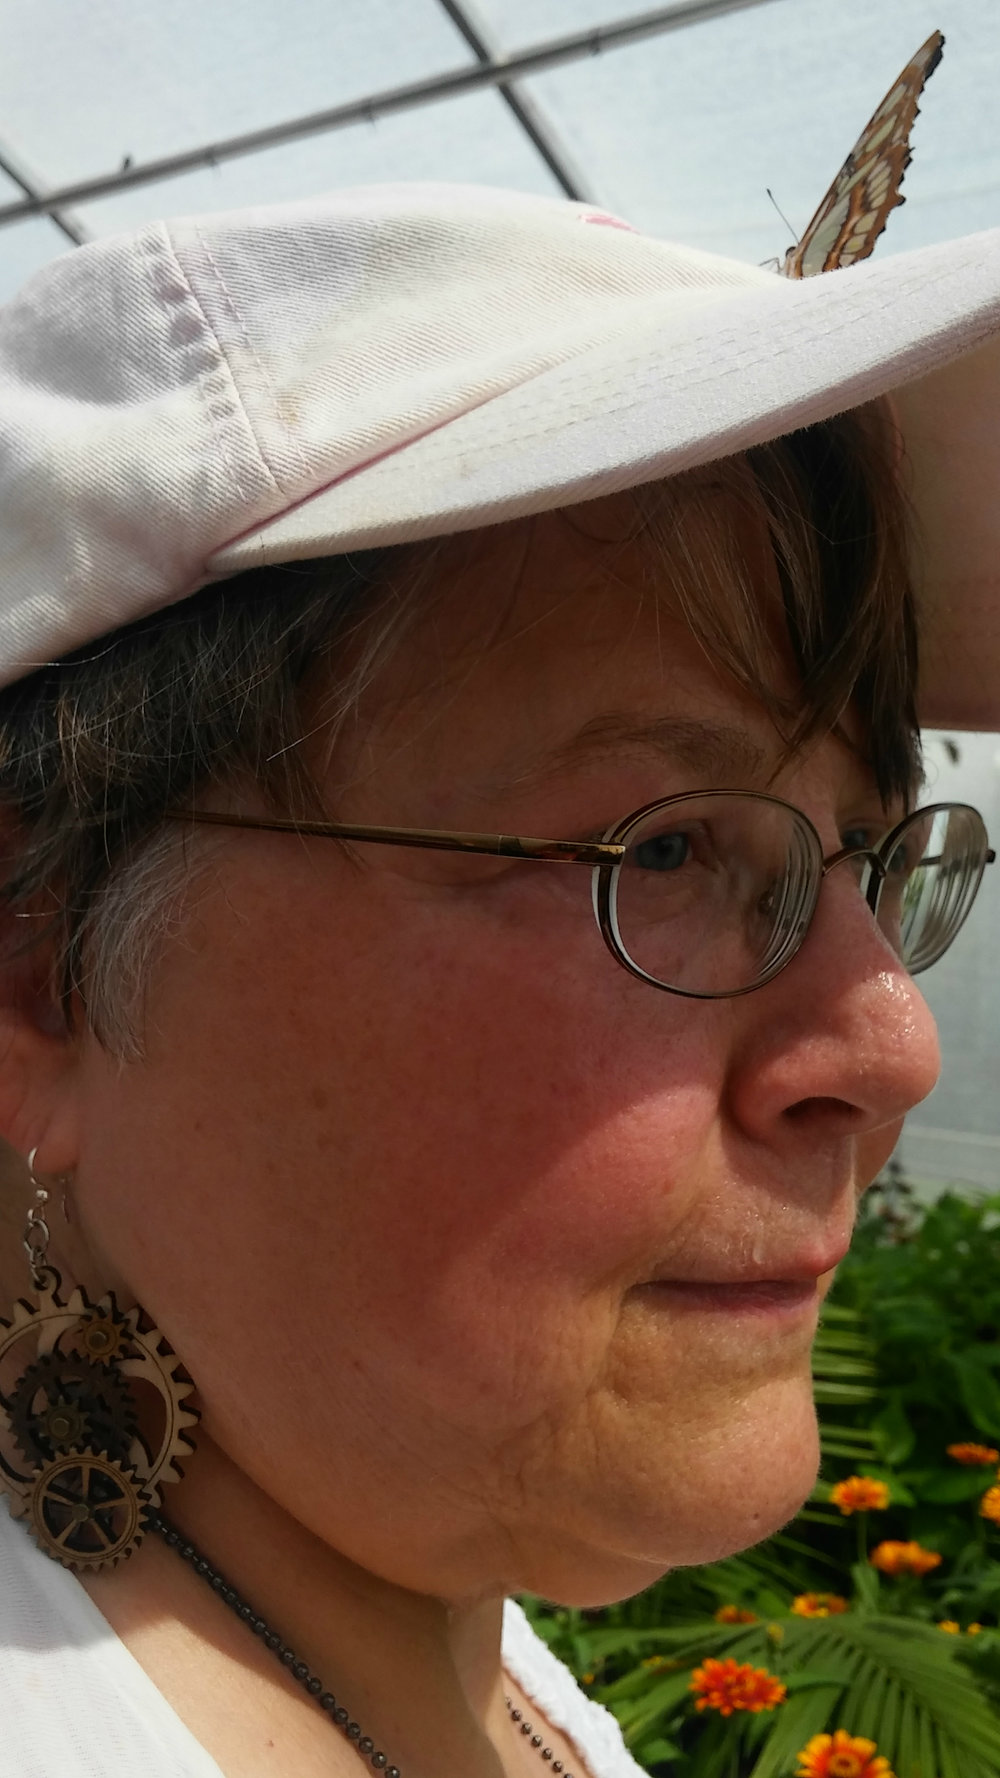 Sandra J. Lindow - lives on a hilltop in Menomonie, Wisconsin.  She teaches, writes, and edits. Her poetry can be found at Blue Heron Review, Strange Horizons, Riddled by Arrows and Gyroscope Review. Presently she is guest editor of two electronic magazines: Bramble, sponsored by the Wisconsin Fellowship of Poets and Eye to the Telescope, sponsored by the Science Fiction and Fantasy Poetry Association.